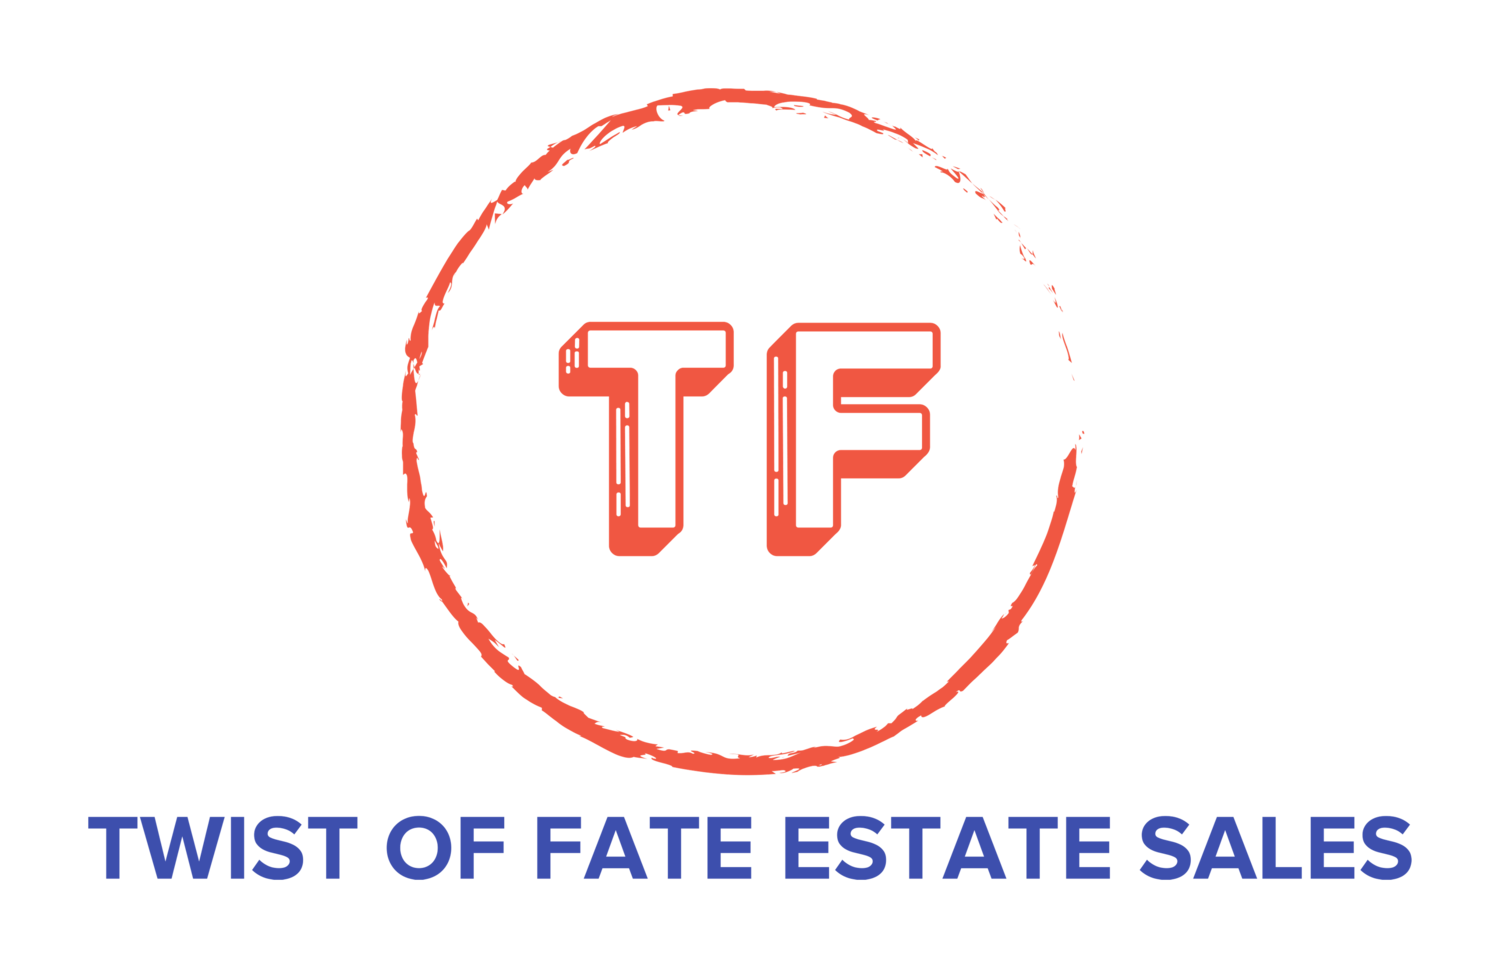 Twist Of Fate Estate Sales